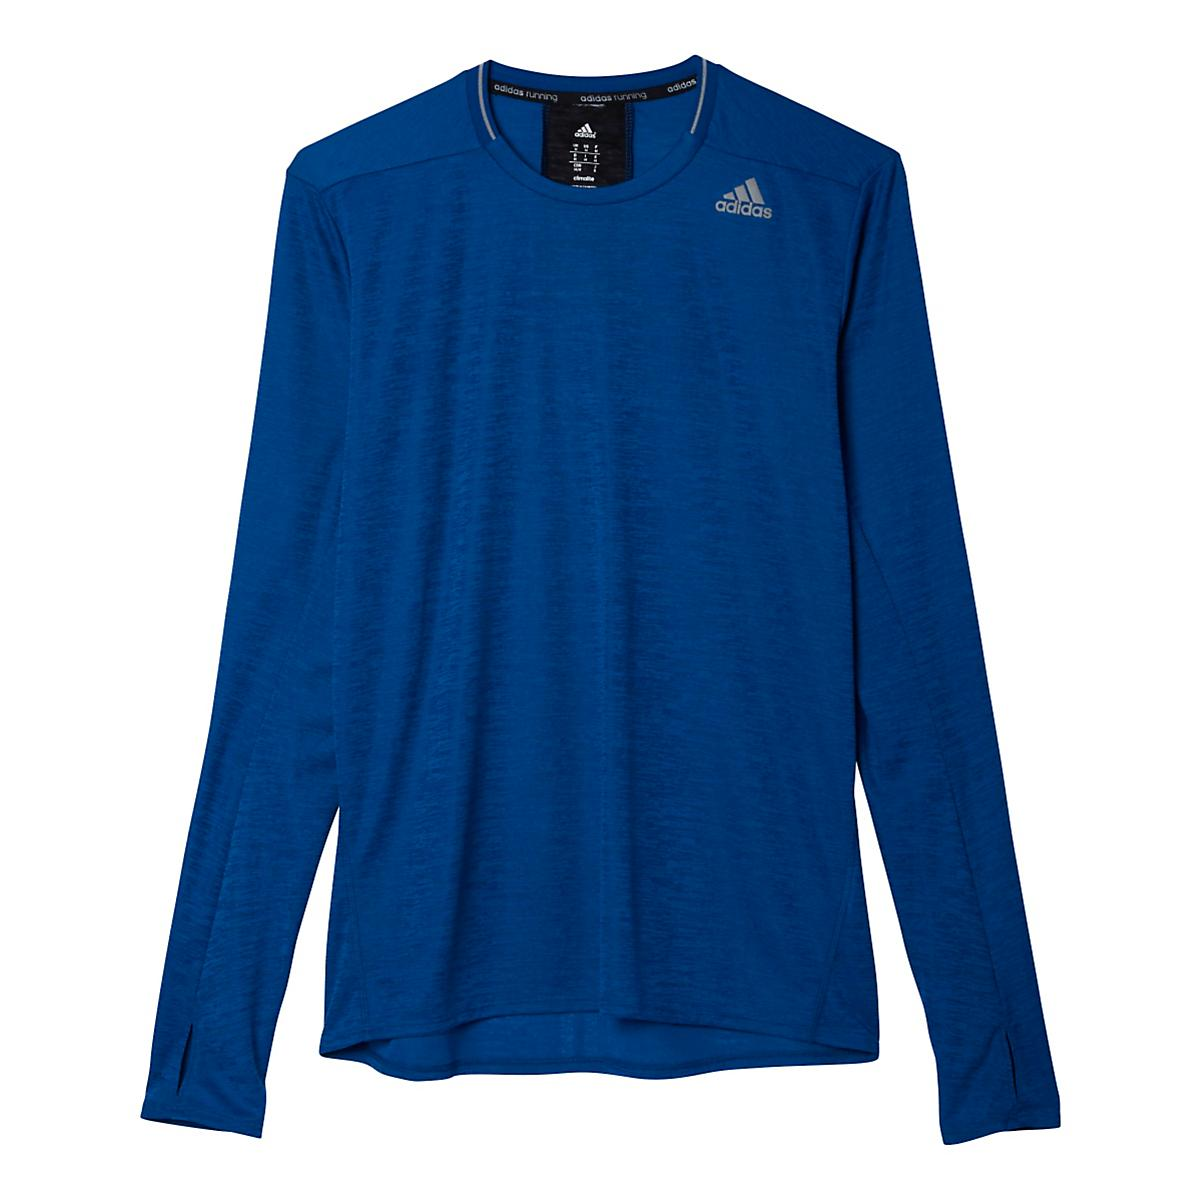 Men's adidas�Supernova Long Sleeve Tee